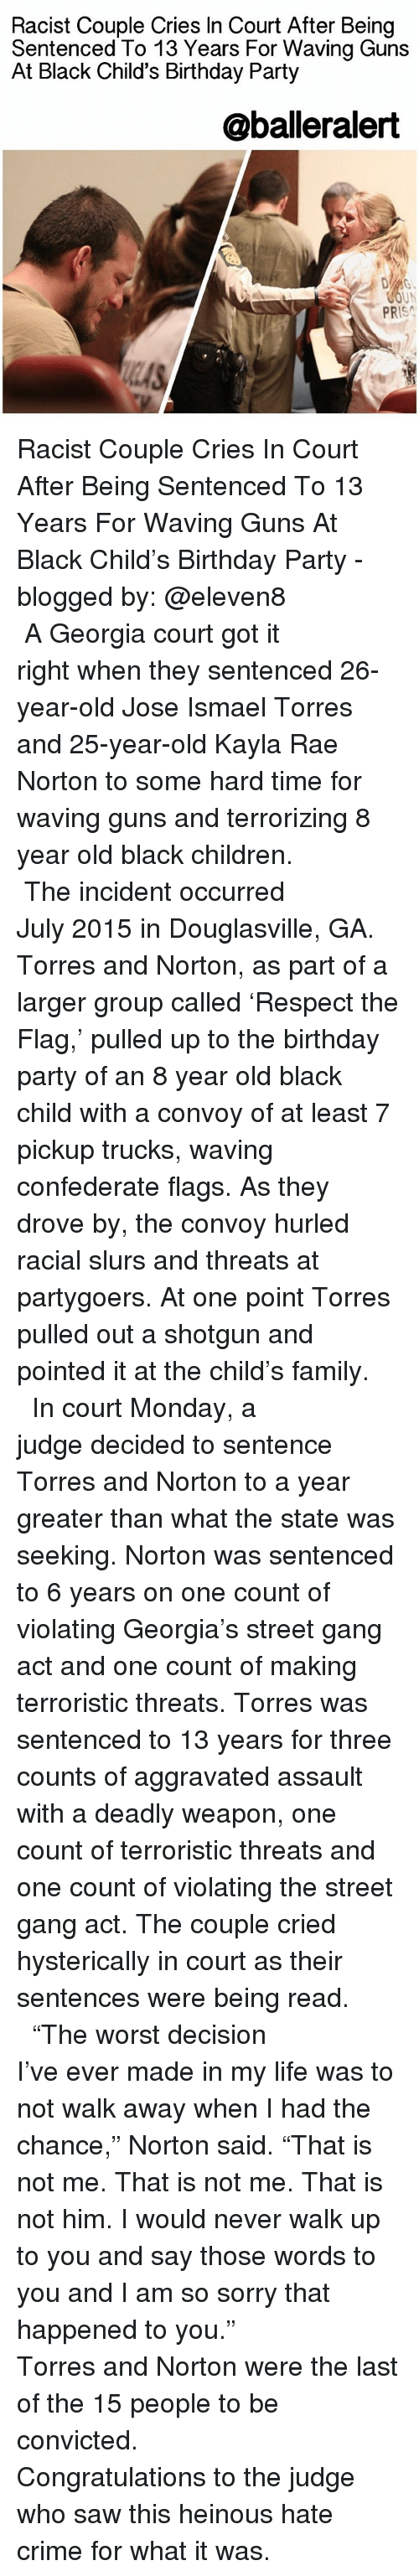 """25 Years Old: Racist Couple Cries In Court After Being  Sentenced To 13 Years For Waving Guns  At Black Child's Birthday Party  @balleralert  OUN  PR Racist Couple Cries In Court After Being Sentenced To 13 Years For Waving Guns At Black Child's Birthday Party - blogged by: @eleven8 ⠀⠀⠀⠀⠀⠀⠀⠀⠀ ⠀⠀⠀⠀⠀⠀⠀⠀⠀ A Georgia court got it right when they sentenced 26-year-old Jose Ismael Torres and 25-year-old Kayla Rae Norton to some hard time for waving guns and terrorizing 8 year old black children. ⠀⠀⠀⠀⠀⠀⠀⠀⠀ ⠀⠀⠀⠀⠀⠀⠀⠀⠀ The incident occurred July 2015 in Douglasville, GA. Torres and Norton, as part of a larger group called 'Respect the Flag,' pulled up to the birthday party of an 8 year old black child with a convoy of at least 7 pickup trucks, waving confederate flags. As they drove by, the convoy hurled racial slurs and threats at partygoers. At one point Torres pulled out a shotgun and pointed it at the child's family. ⠀⠀⠀⠀⠀⠀⠀⠀⠀ ⠀⠀⠀⠀⠀⠀⠀⠀⠀ In court Monday, a judge decided to sentence Torres and Norton to a year greater than what the state was seeking. Norton was sentenced to 6 years on one count of violating Georgia's street gang act and one count of making terroristic threats. Torres was sentenced to 13 years for three counts of aggravated assault with a deadly weapon, one count of terroristic threats and one count of violating the street gang act. The couple cried hysterically in court as their sentences were being read. ⠀⠀⠀⠀⠀⠀⠀⠀⠀ ⠀⠀⠀⠀⠀⠀⠀⠀⠀ """"The worst decision I've ever made in my life was to not walk away when I had the chance,"""" Norton said. """"That is not me. That is not me. That is not him. I would never walk up to you and say those words to you and I am so sorry that happened to you."""" ⠀⠀⠀⠀⠀⠀⠀⠀⠀ ⠀⠀⠀⠀⠀⠀⠀⠀⠀ Torres and Norton were the last of the 15 people to be convicted. ⠀⠀⠀⠀⠀⠀⠀⠀⠀ ⠀⠀⠀⠀⠀⠀⠀⠀⠀ Congratulations to the judge who saw this heinous hate crime for what it was."""